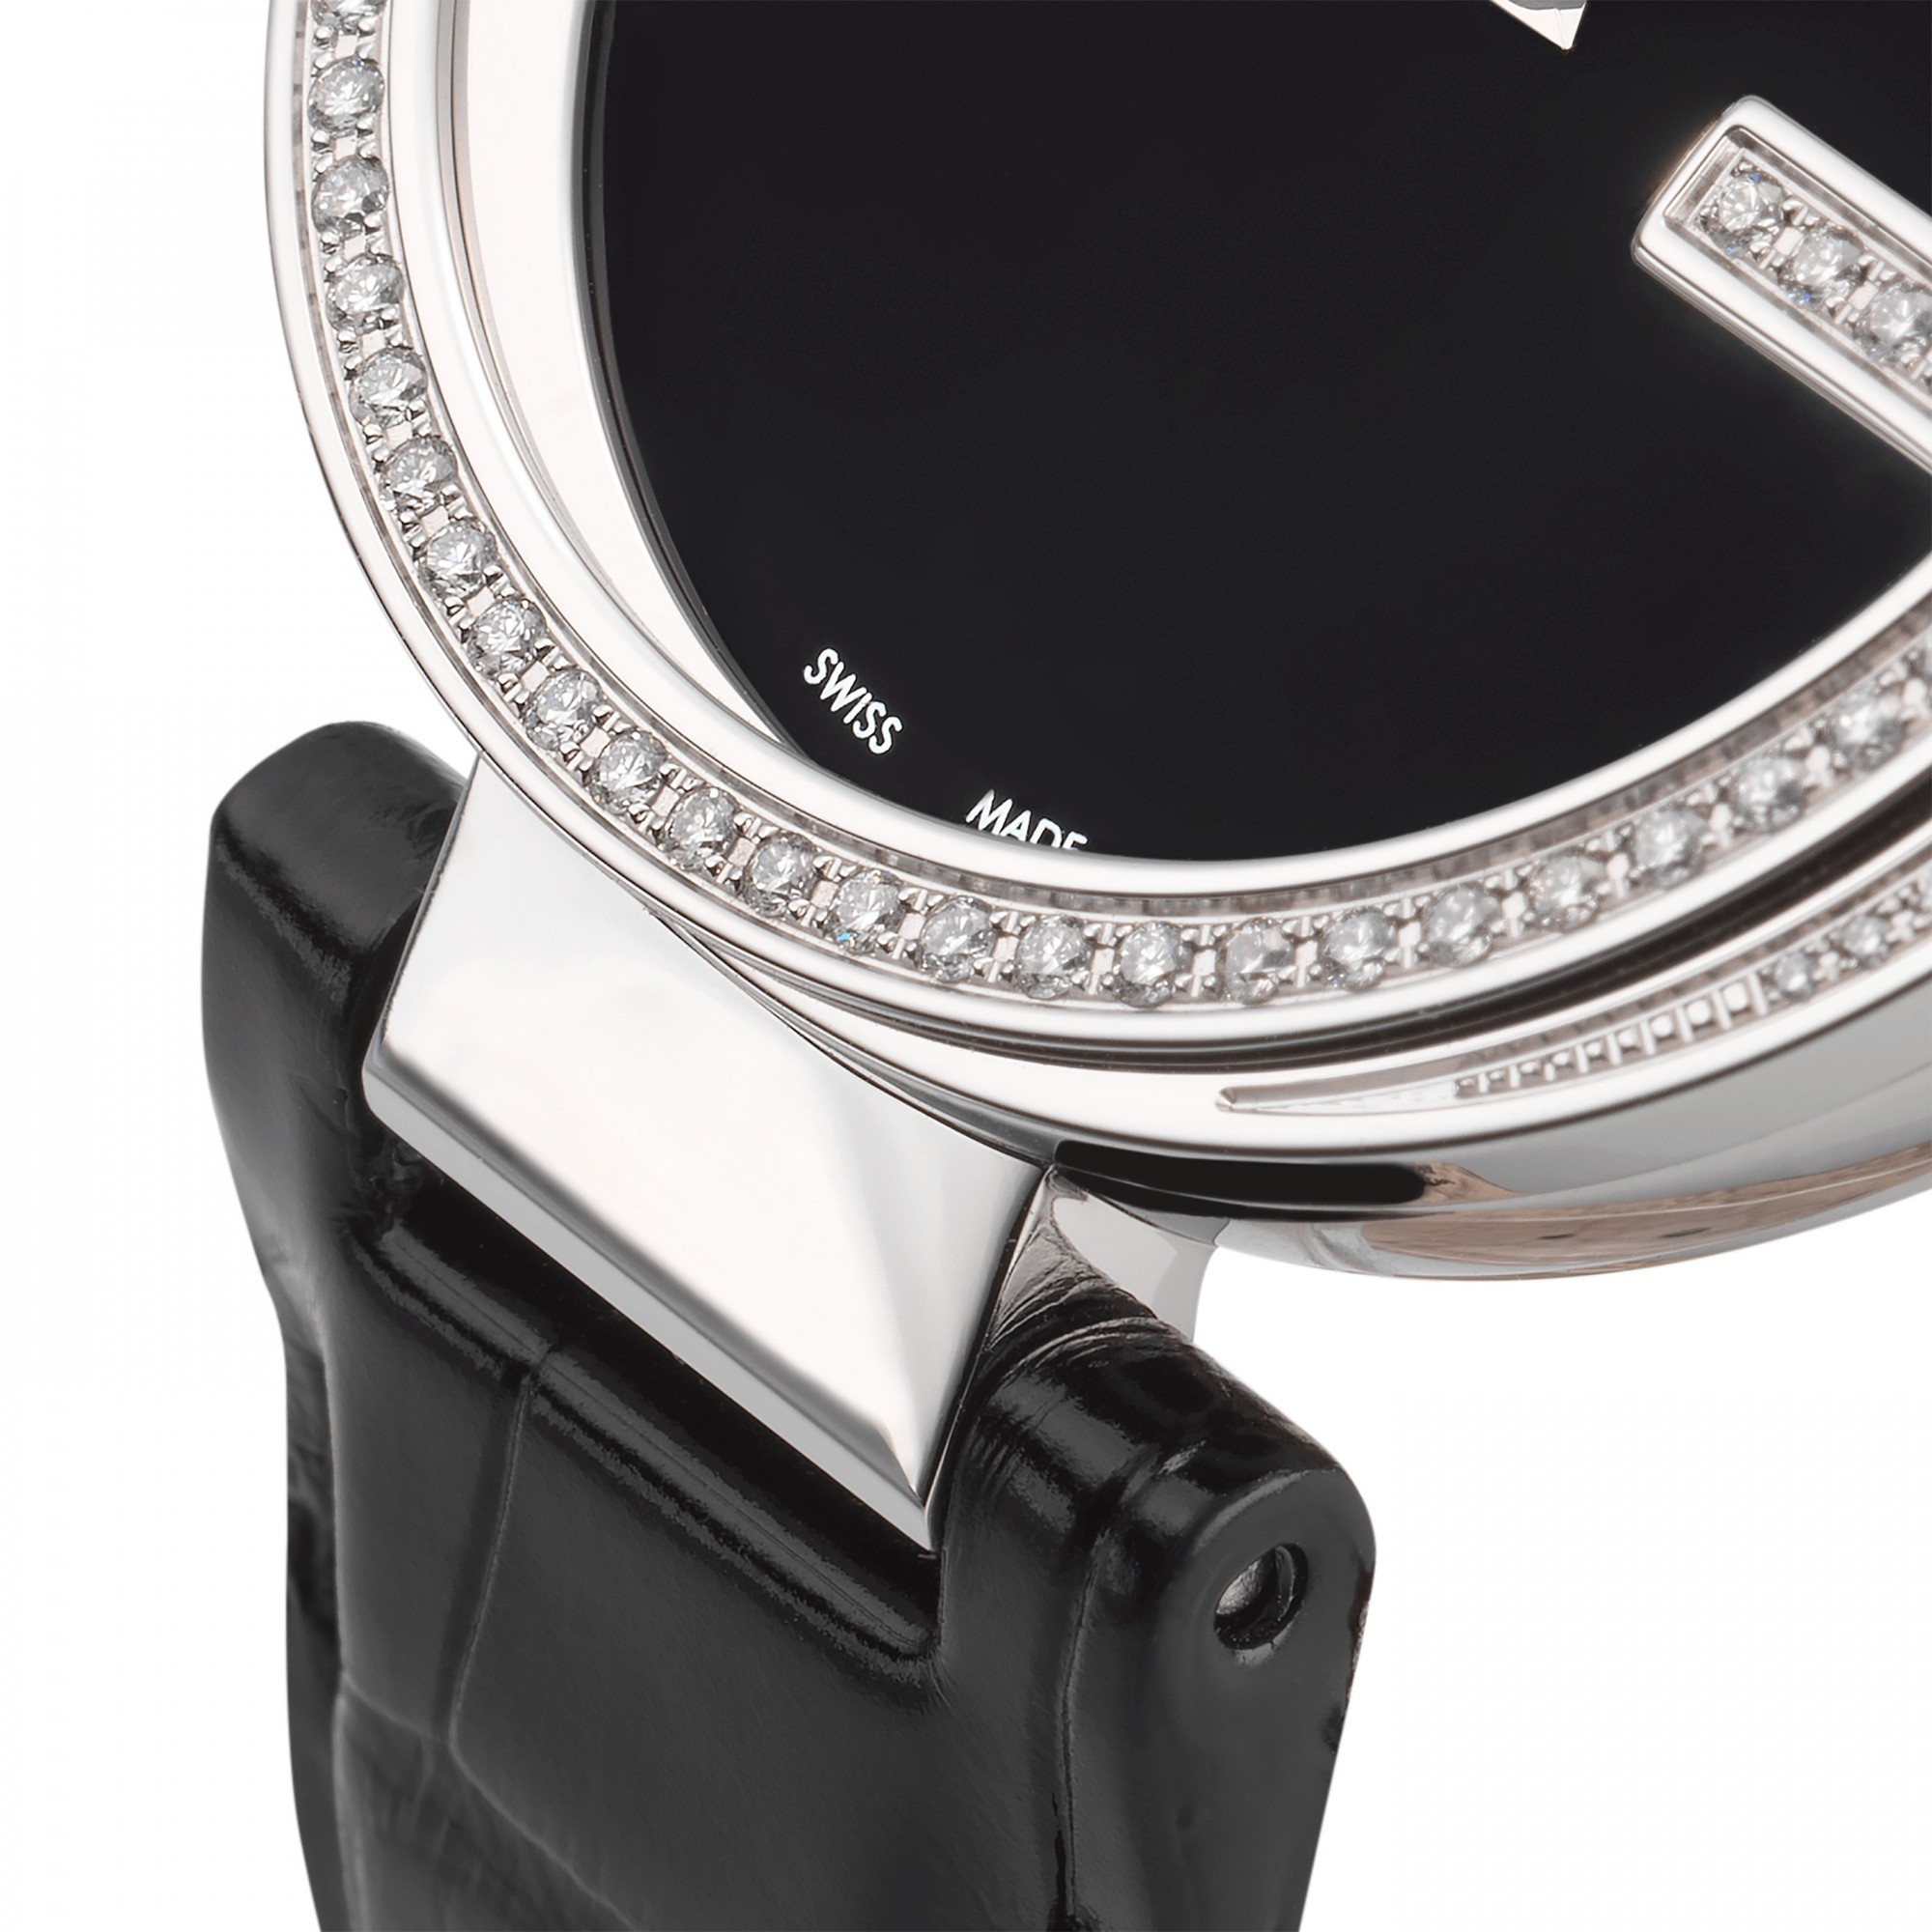 df0dec8f3c3 previous image next image. Gucci YA133306 Interlocking-G Diamond Set  Leather Band Women s Watch